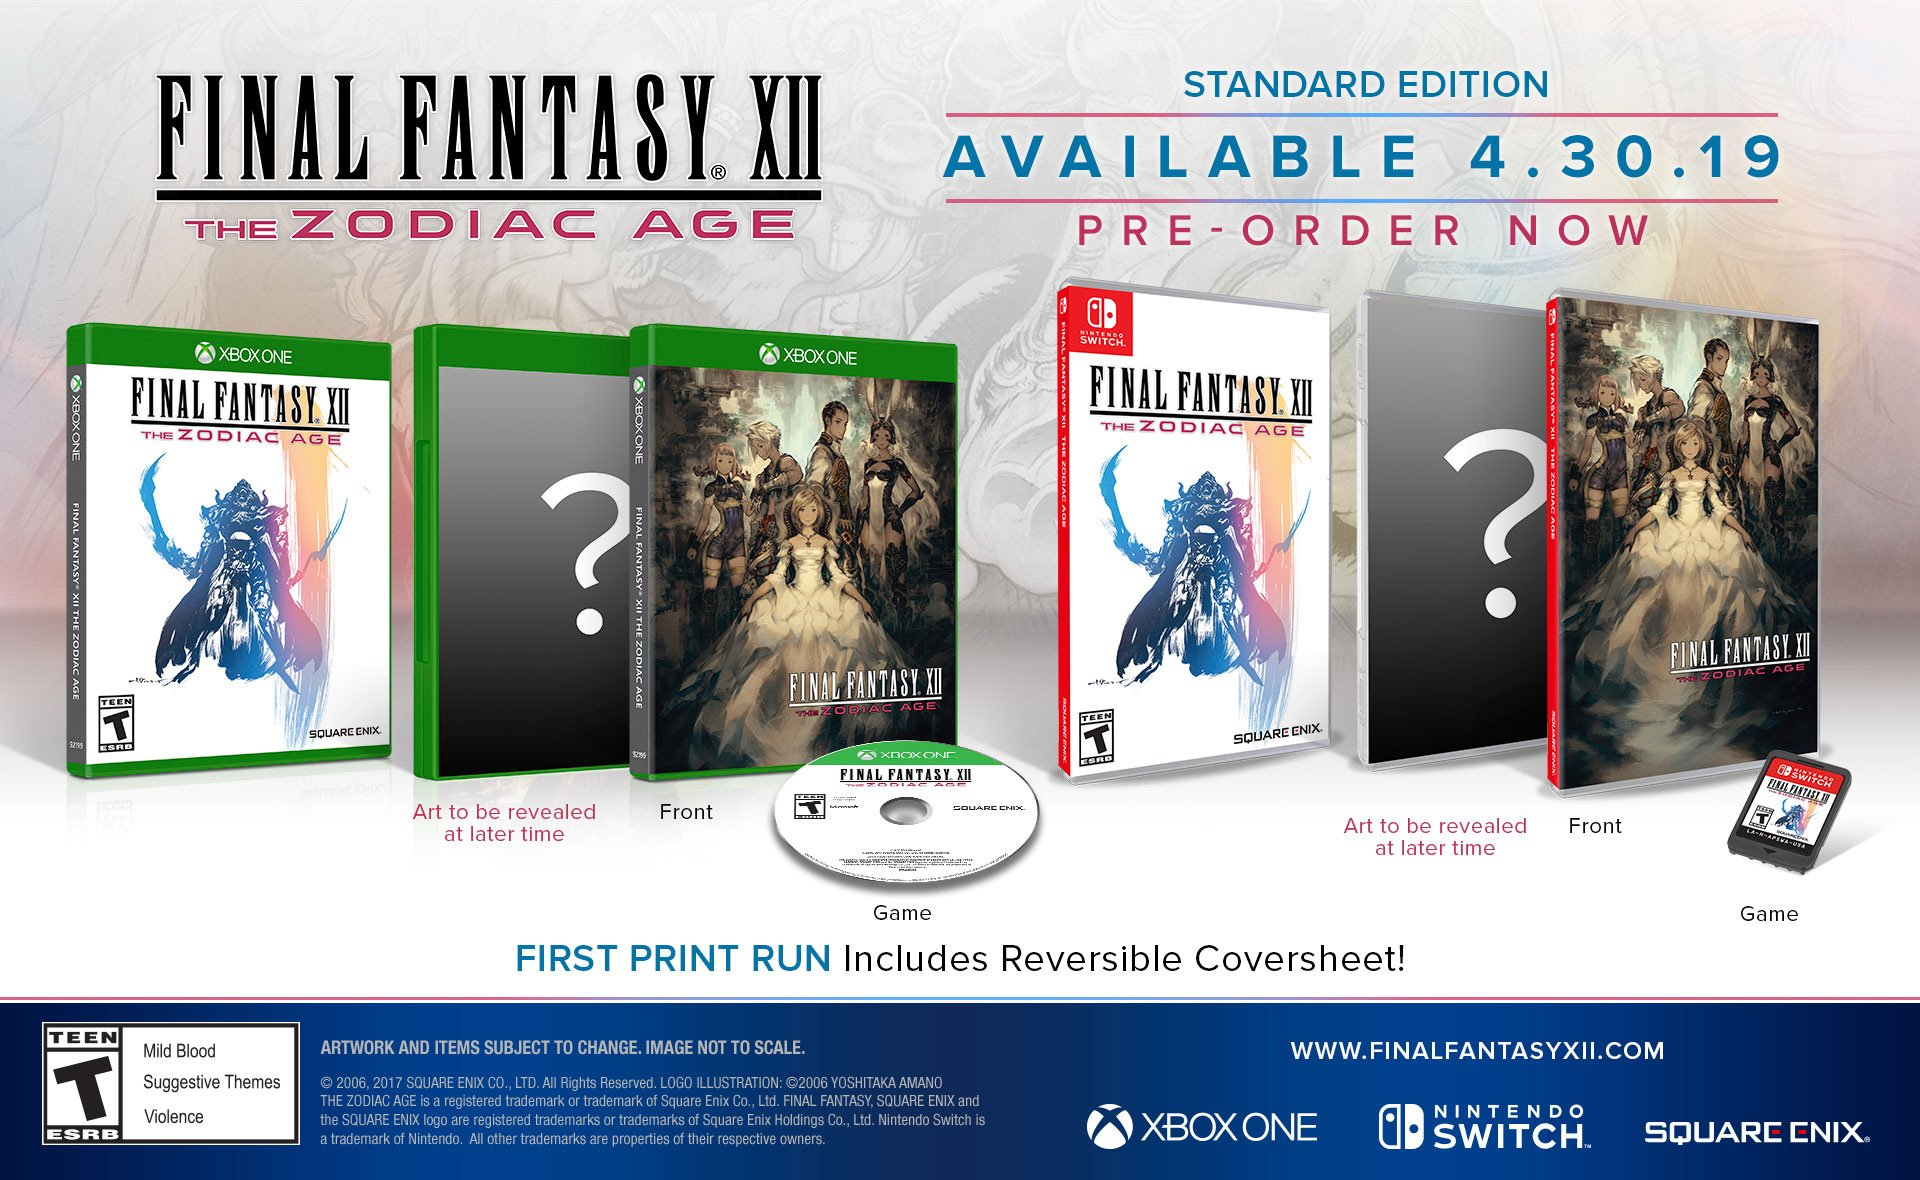 The physical Xbox One and Switch box art for FFXII